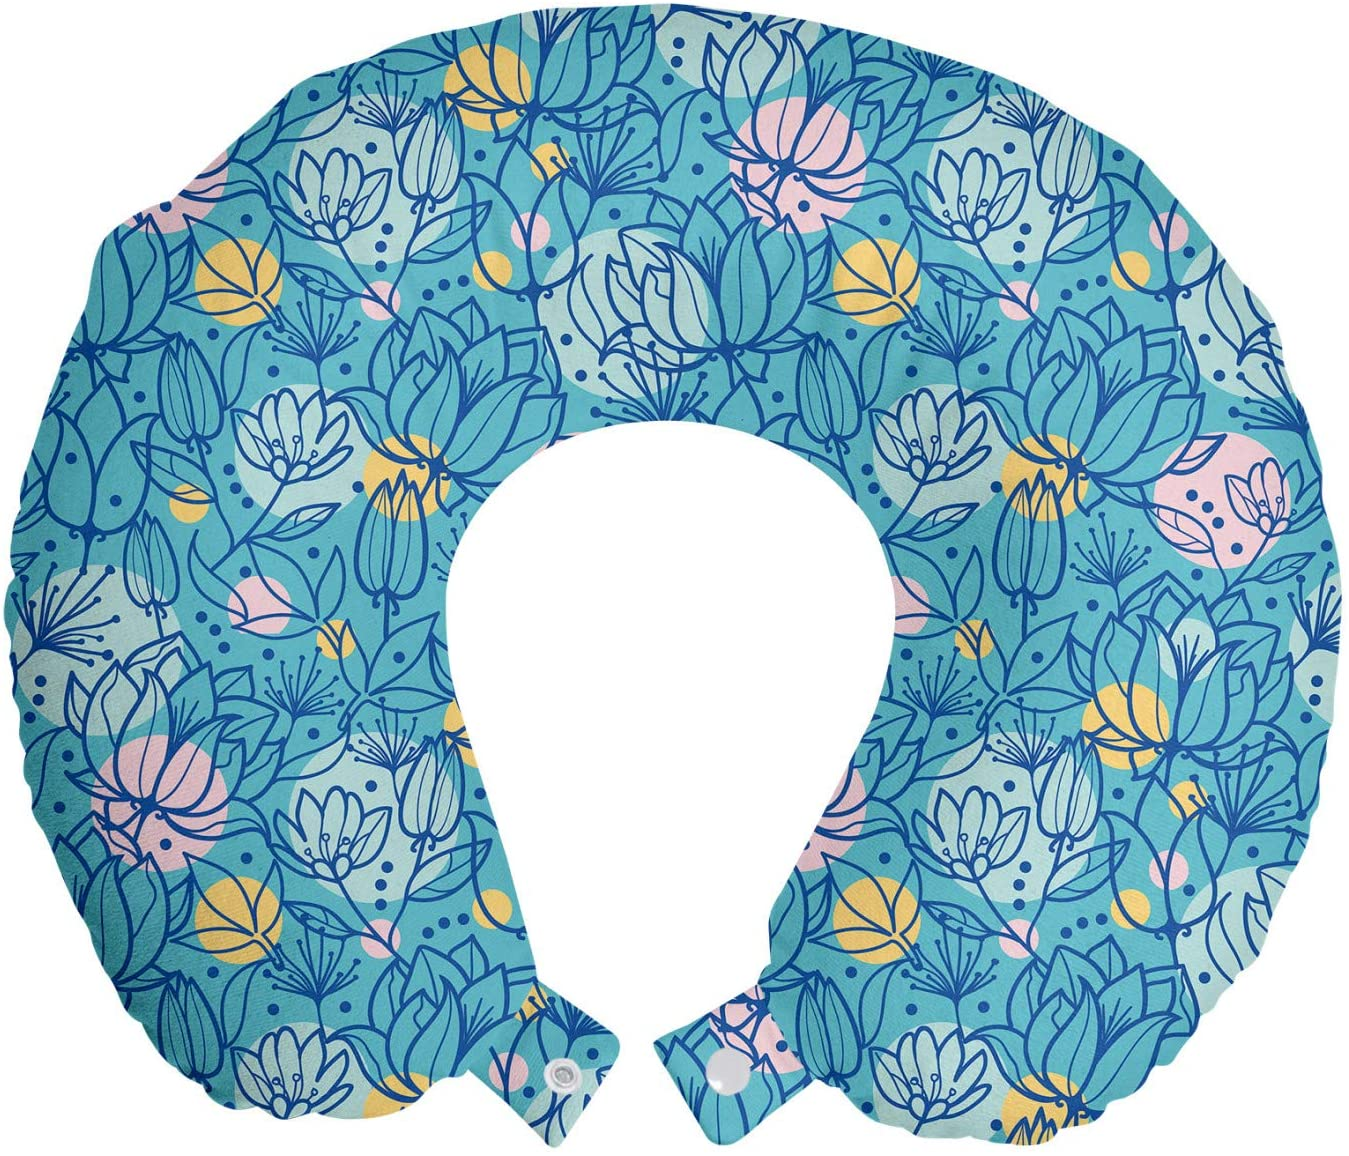 Ambesonne Botanical Travel Pillow Neck Rest, Abstract Flowers and Leaves Colorful Circles on Blue Backdrop Spring Time, Memory Foam Traveling Accessory for Airplane and Car, 12